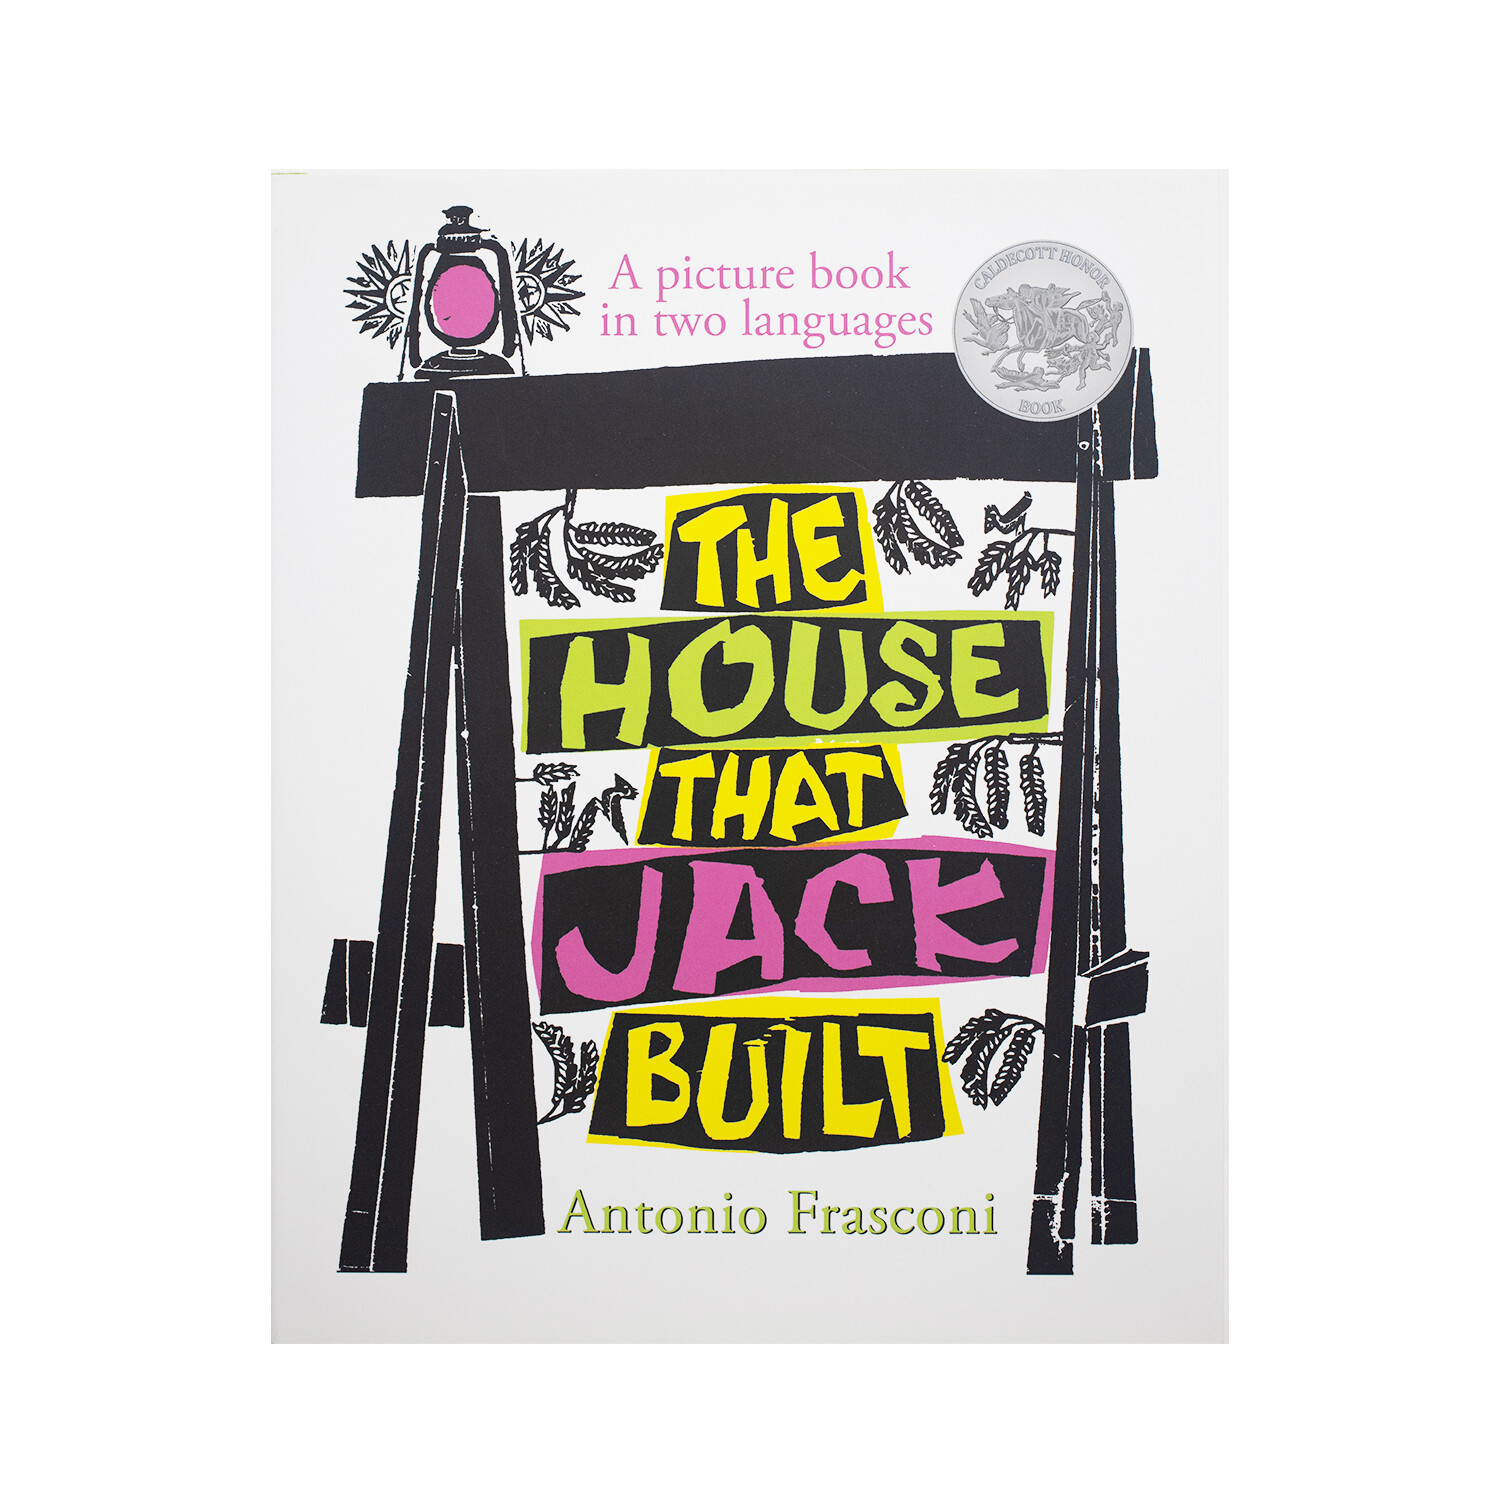 The House That Jack Built: A Picture Book in Two languages by Antonio Frasconi